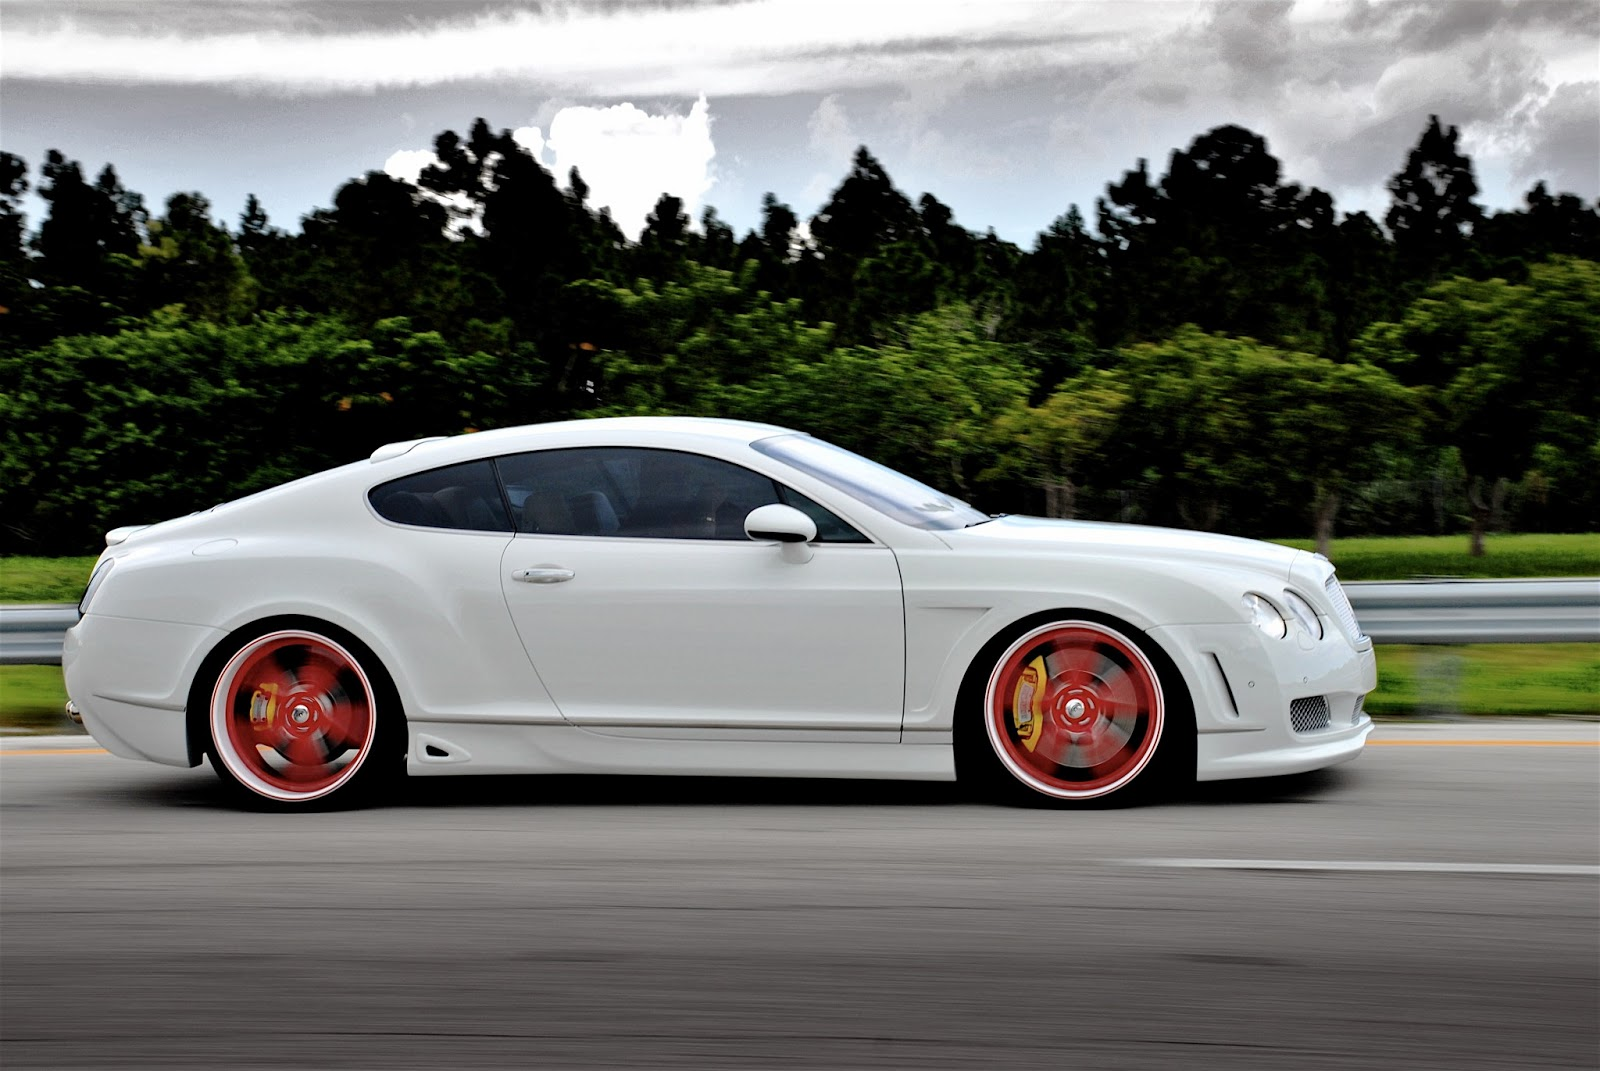 Top 44 Most Amazing And Incredible Bentley Car Wallpapers